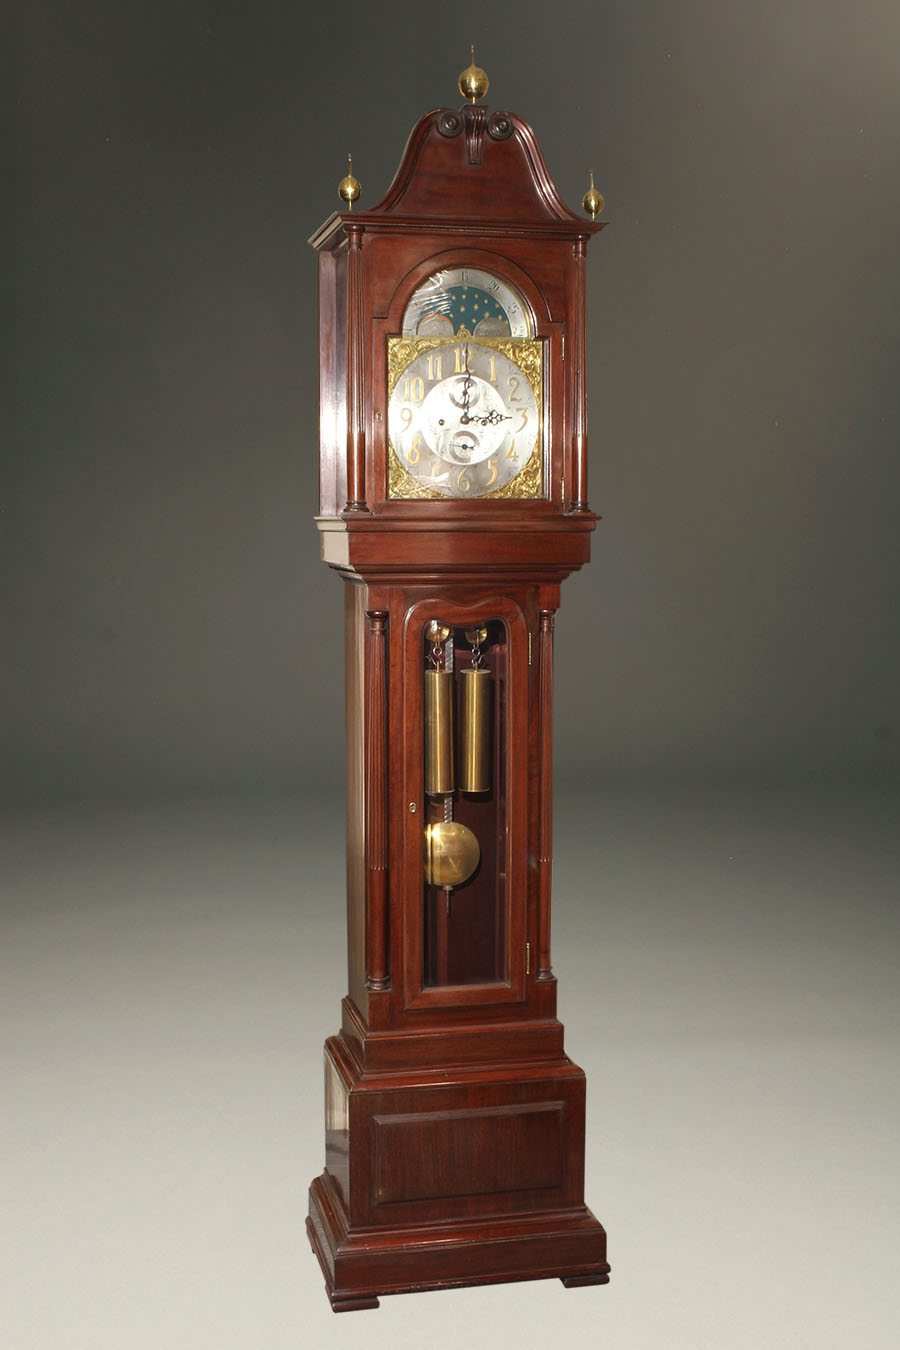 Antique Grandfather Clock With A Very Nice Mahogany Case